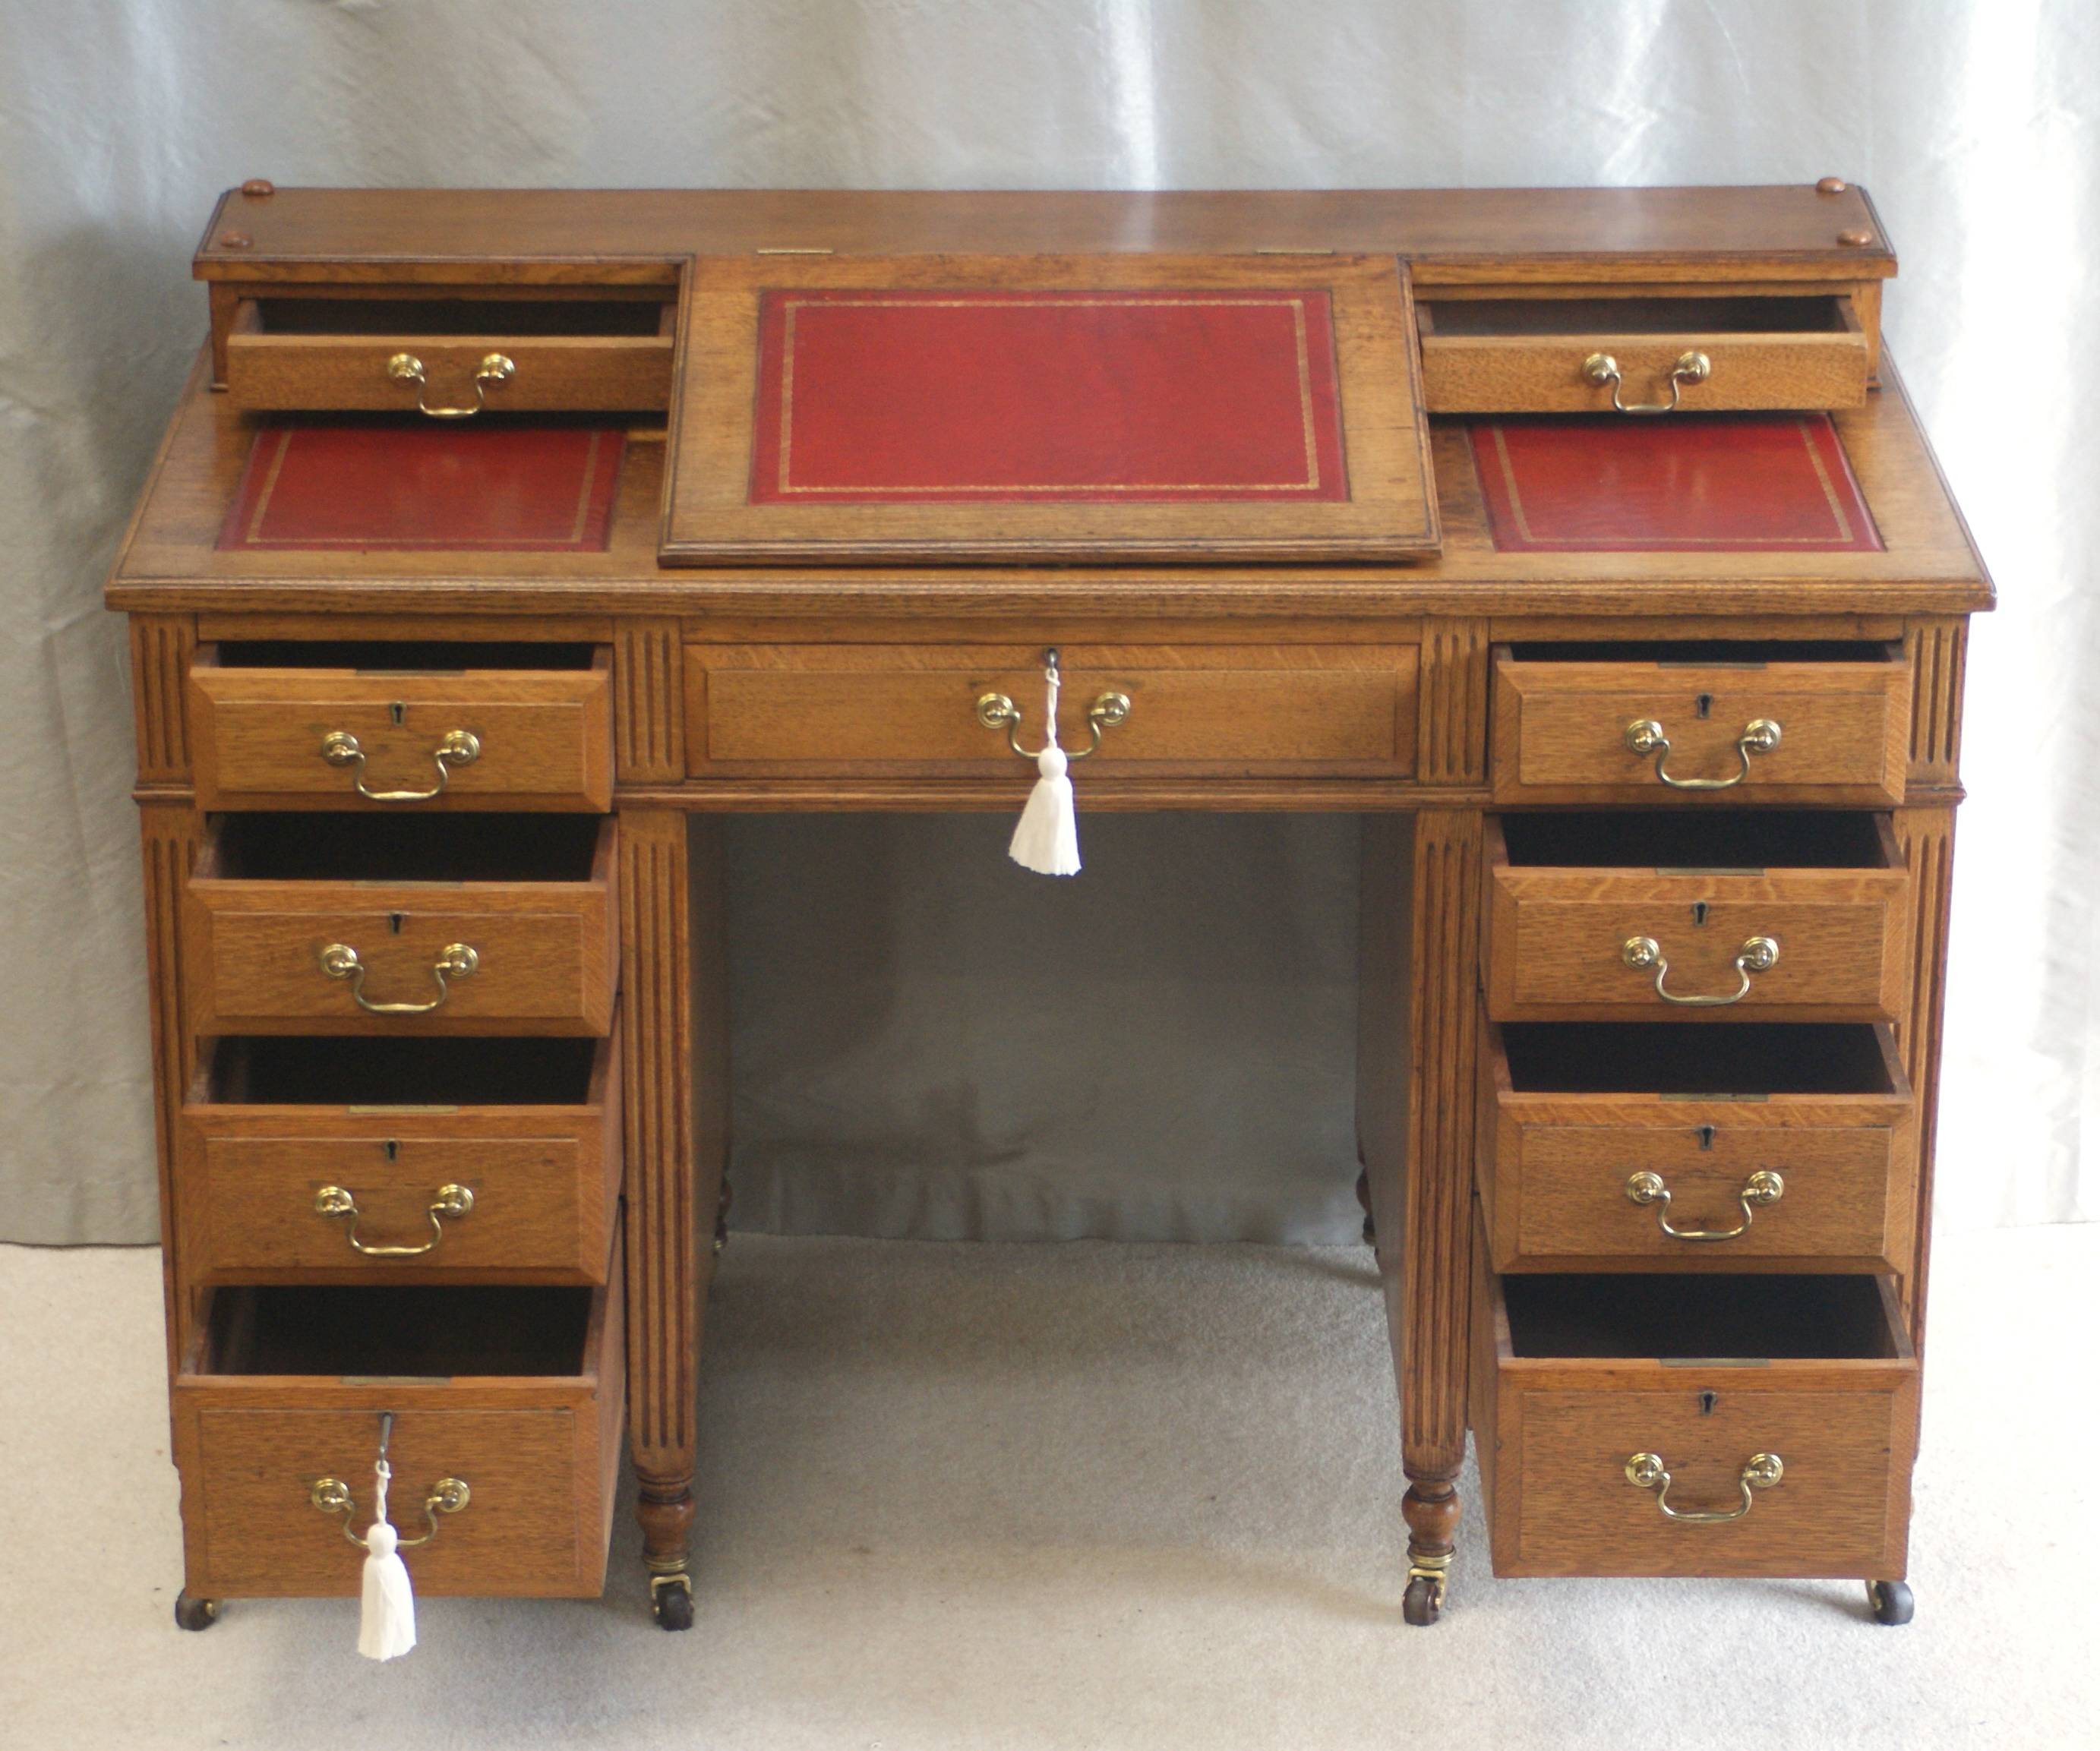 Antique Victorian Oak Dickens Desk Ref 4025 For Sale. Hideaway Desk Cabinet. File Desk. Chest Of Drawers Deep Drawers. L Shape Office Desks